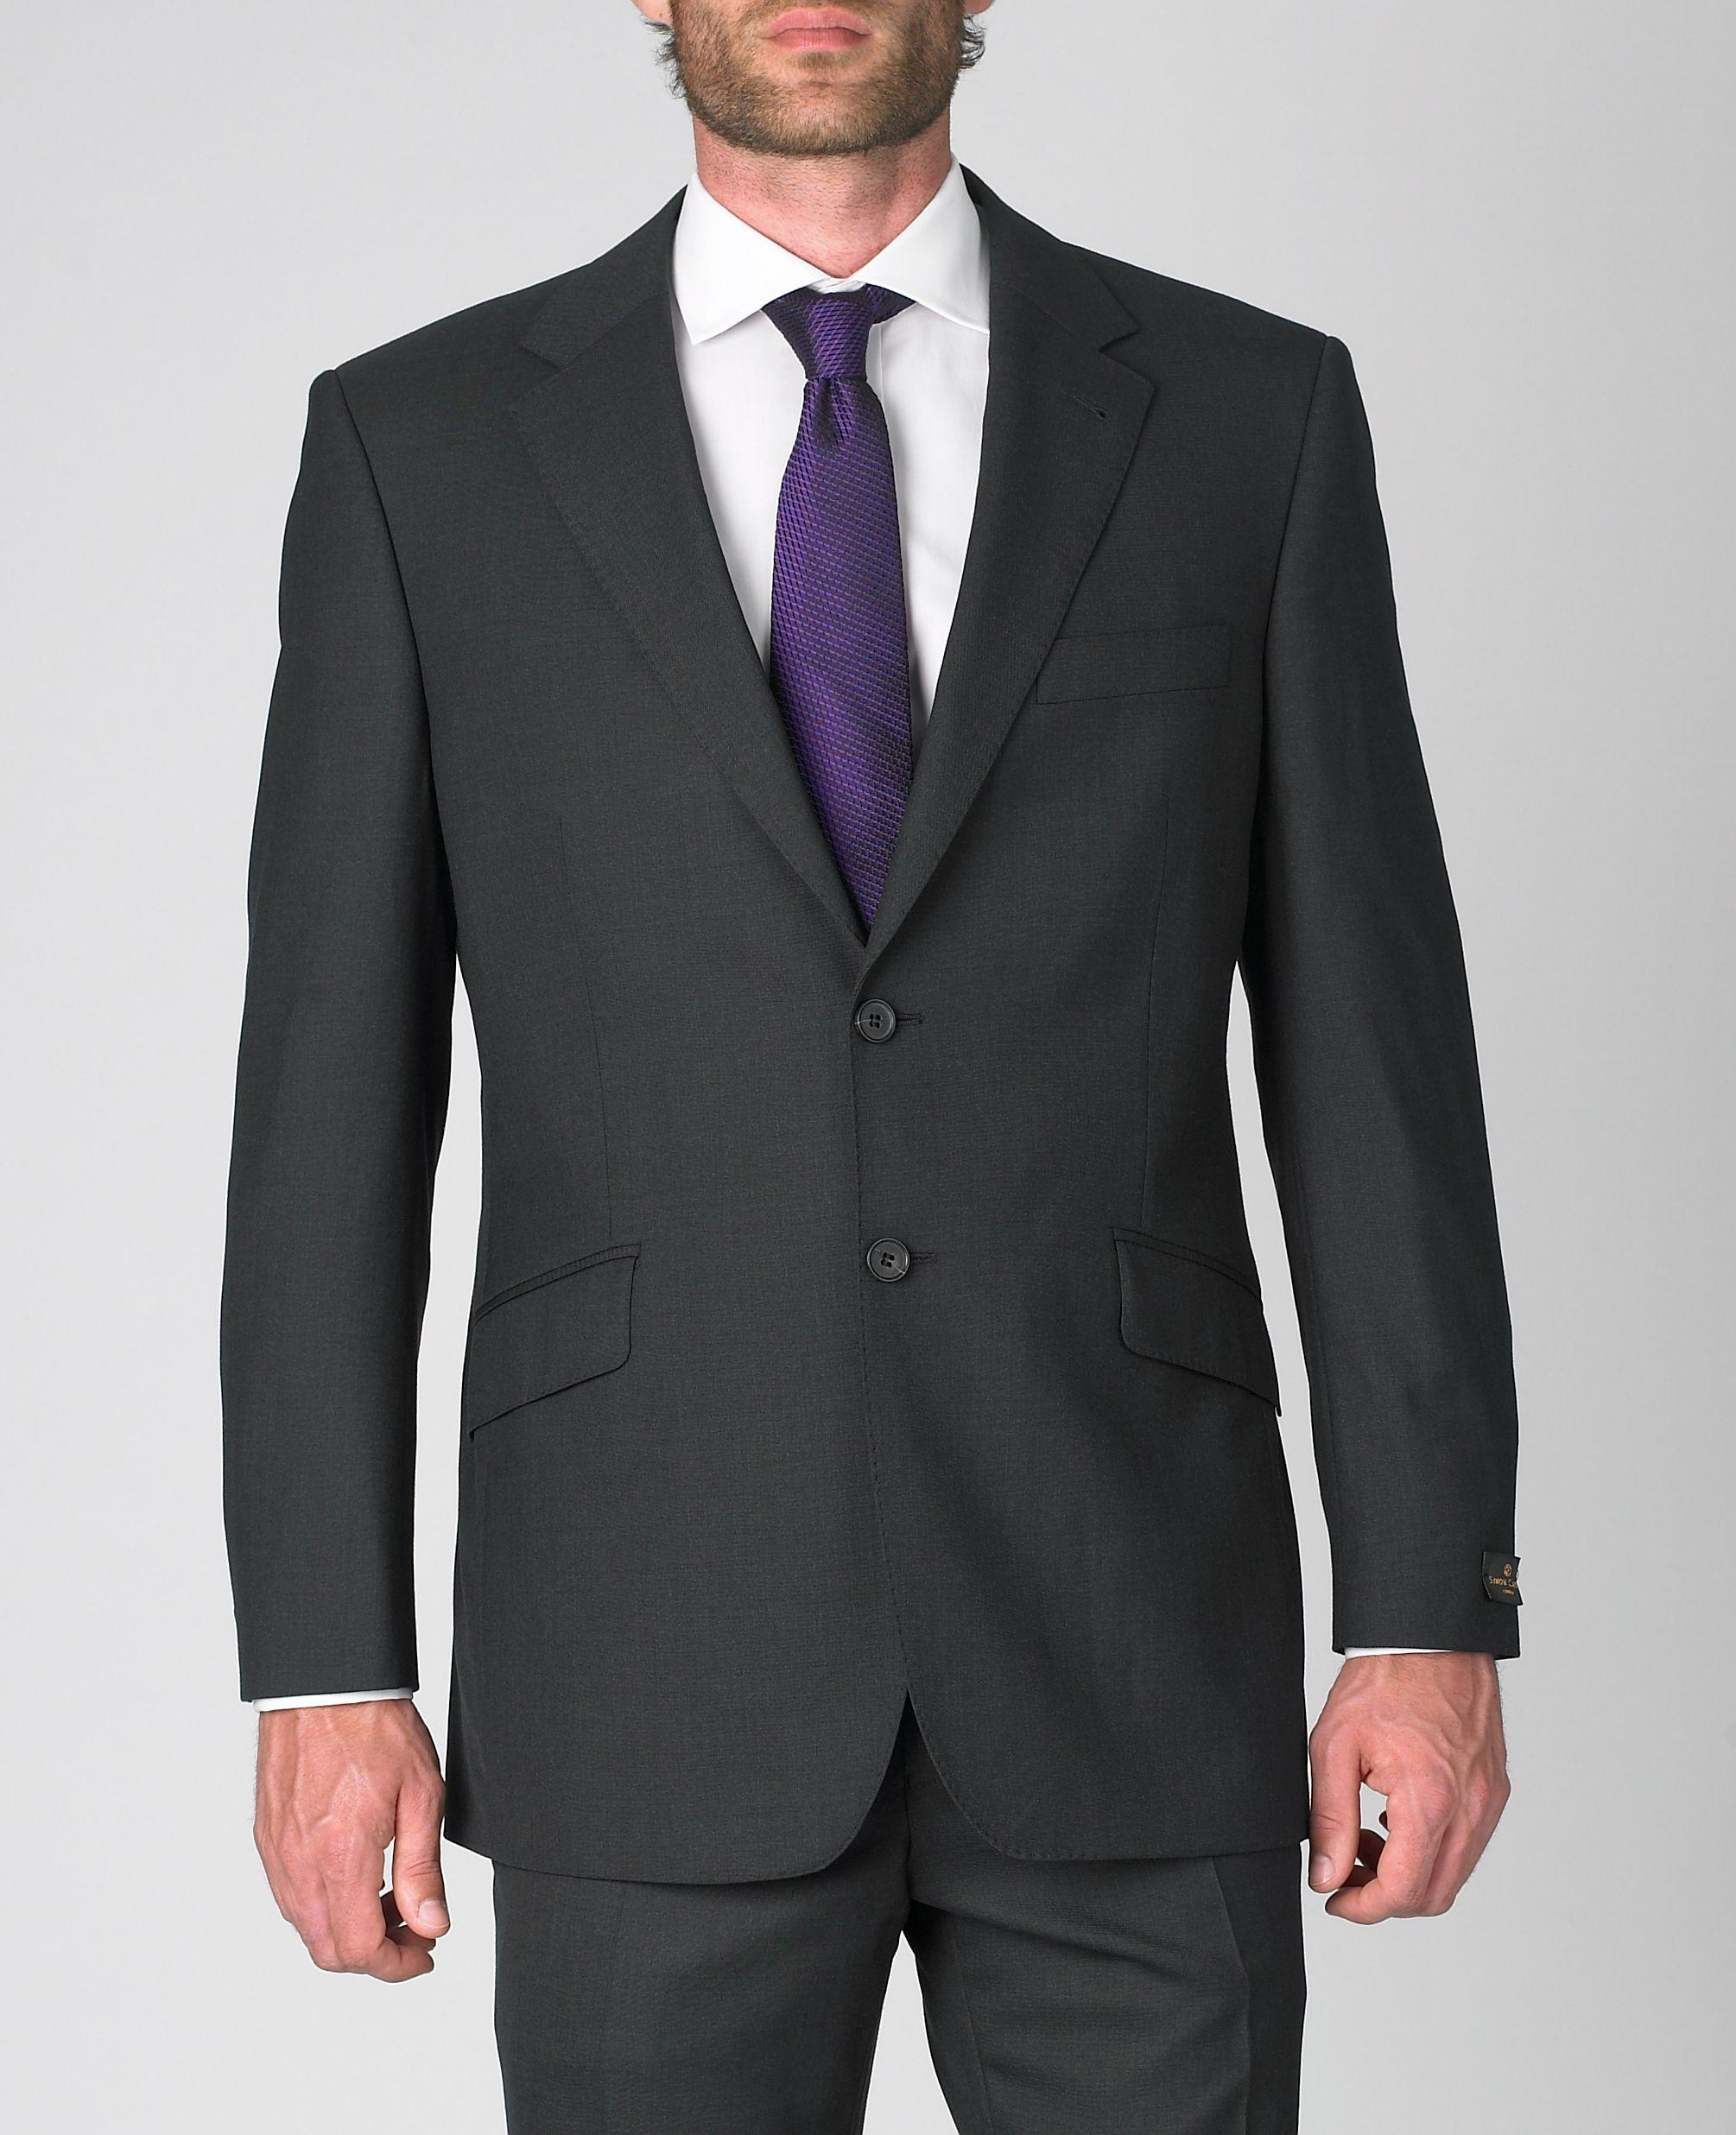 gray summit single men Get your gray tuxedo rental by joseph abboud from men's wearhouse view our prestyled grey notch lapel tuxedo looks for weddings, proms & special occasions.